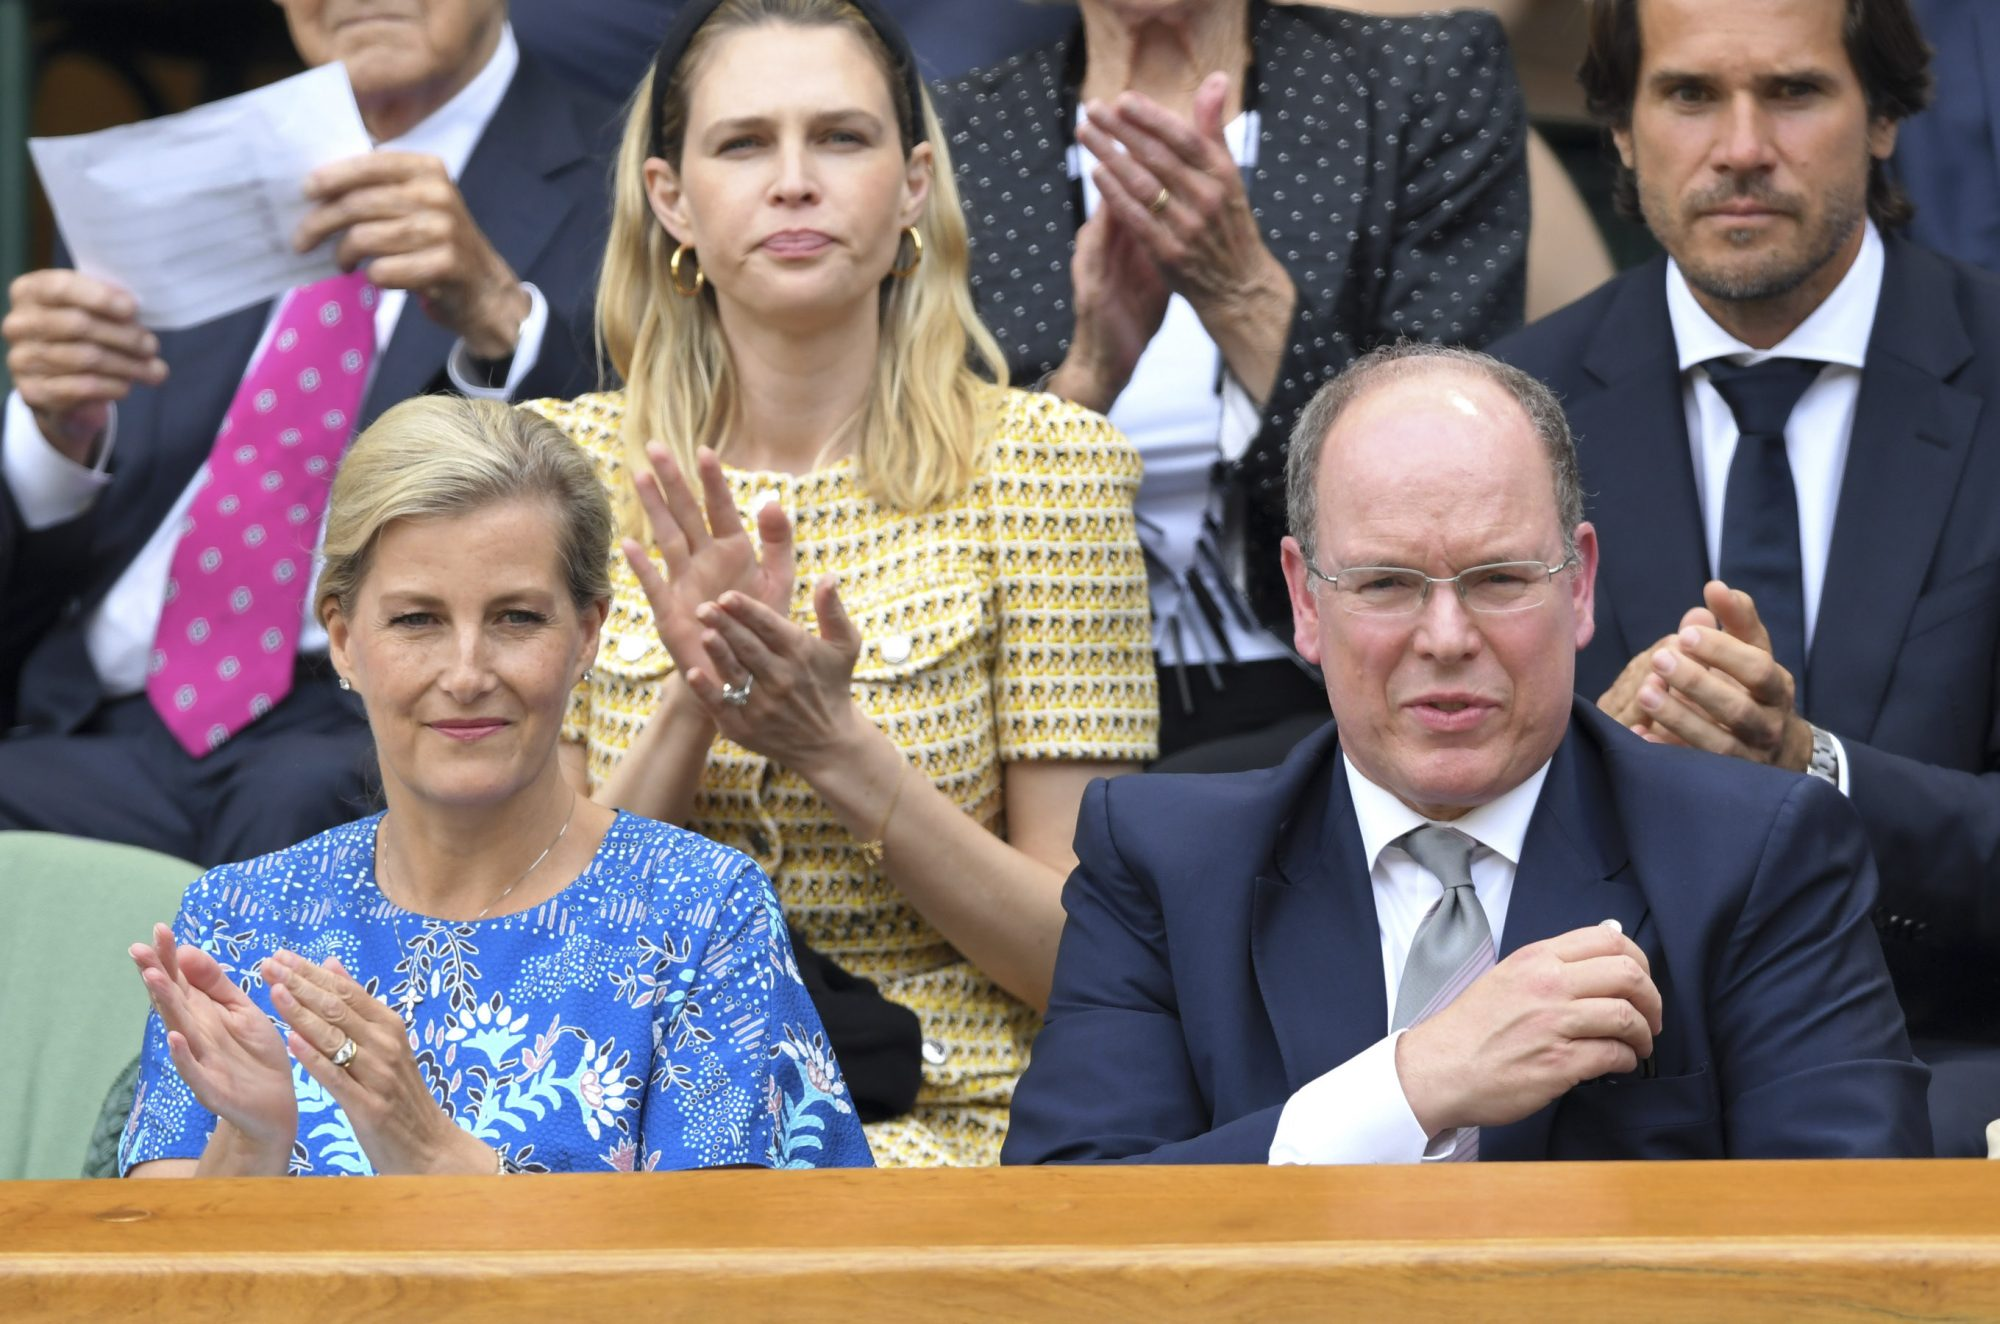 LONDON, ENGLAND - JULY 10: Sophie, Countess of Wessex and Albert II, Prince of Monaco attend day nine of the Wimbledon Tennis Championships at All England Lawn Tennis and Croquet Club on July 10, 2019 in London, England. (Photo by Karwai Tang/Getty Images)